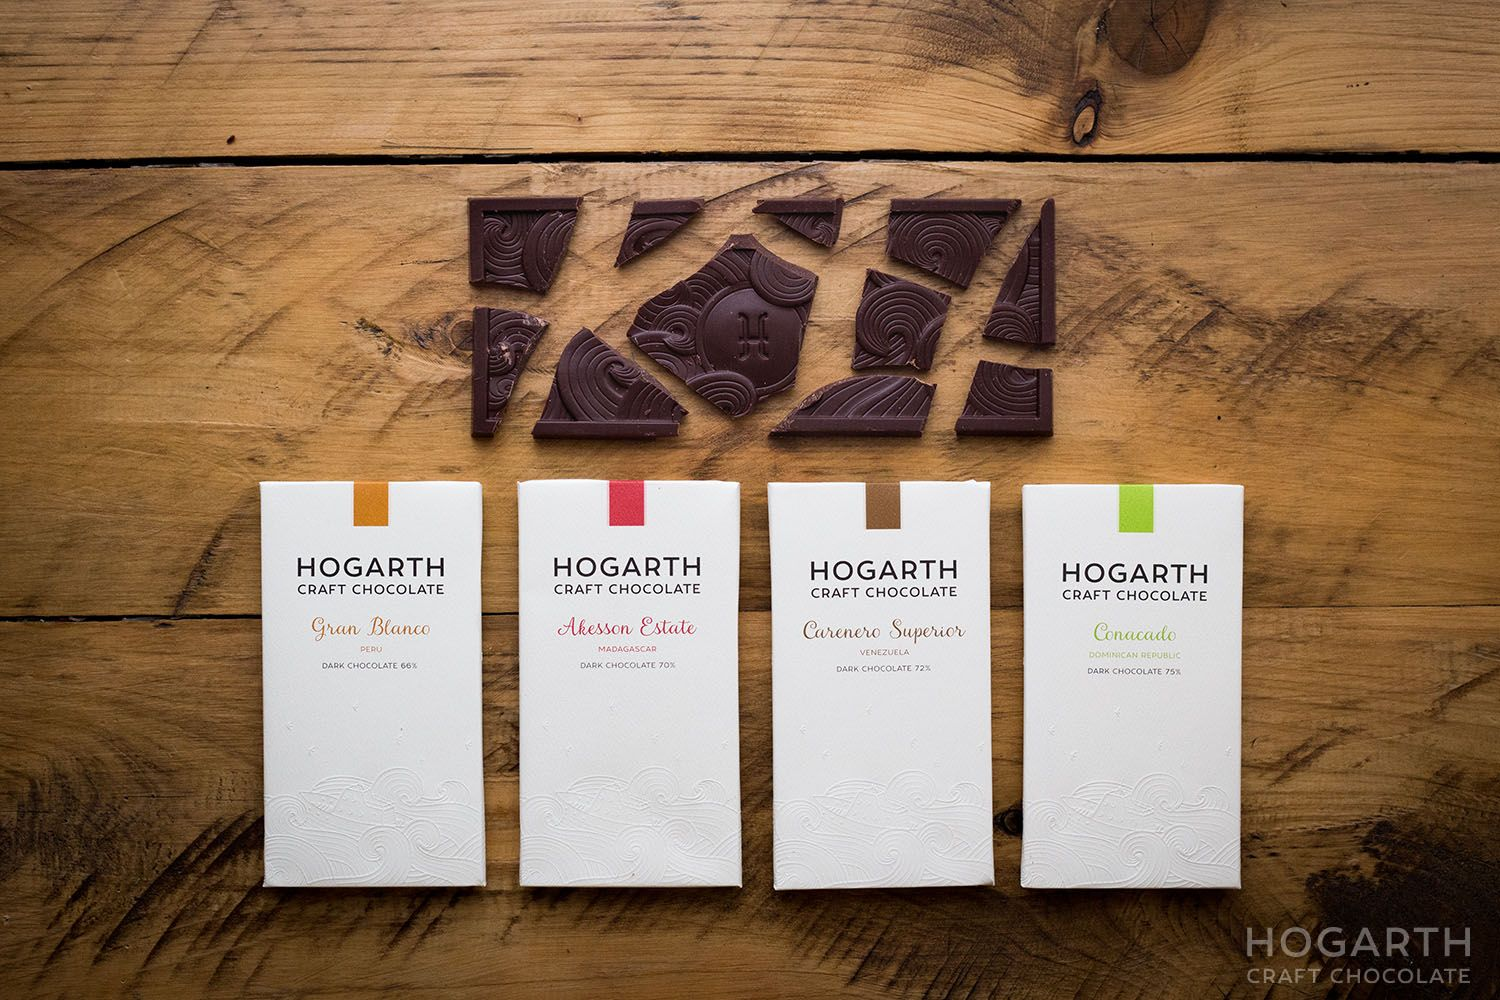 Hogarth Craft Chocolate Handcrafted From Bean To Bar New Zealand